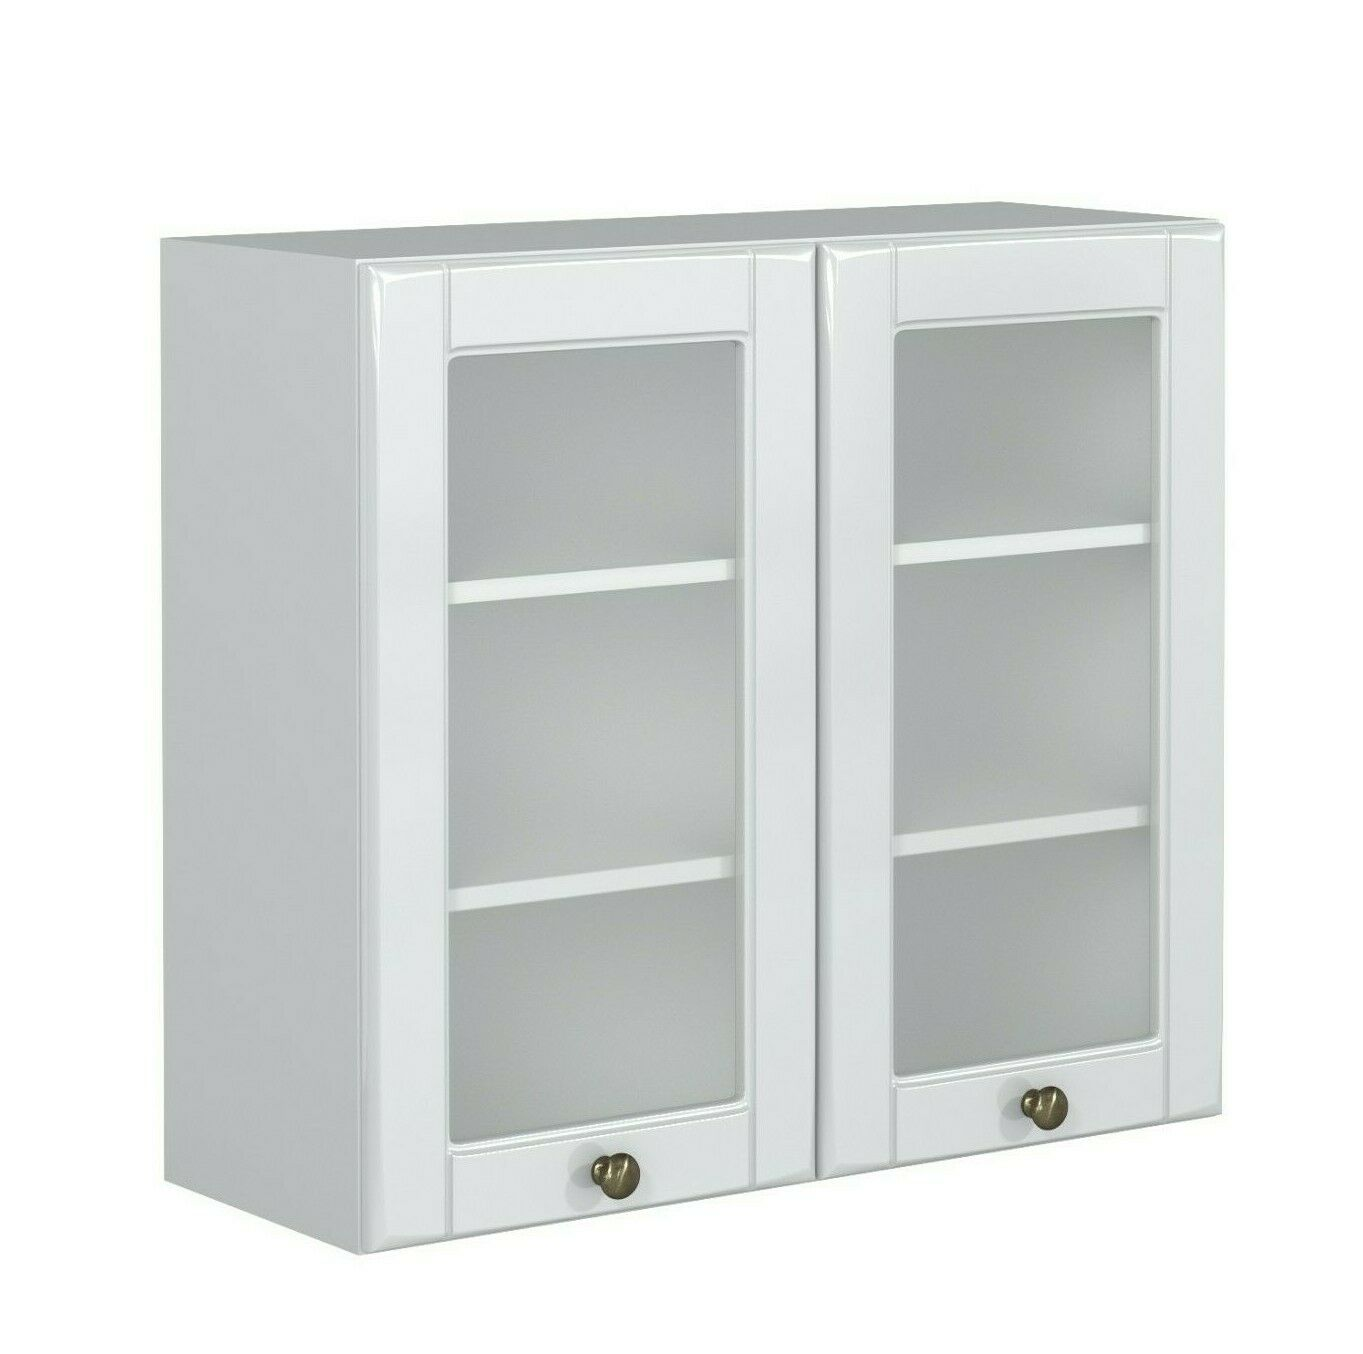 White Gloss Kitchen Glass Door Unit Wall Cabinet 80cm 800 Cupboard Shaker Antila Ebay